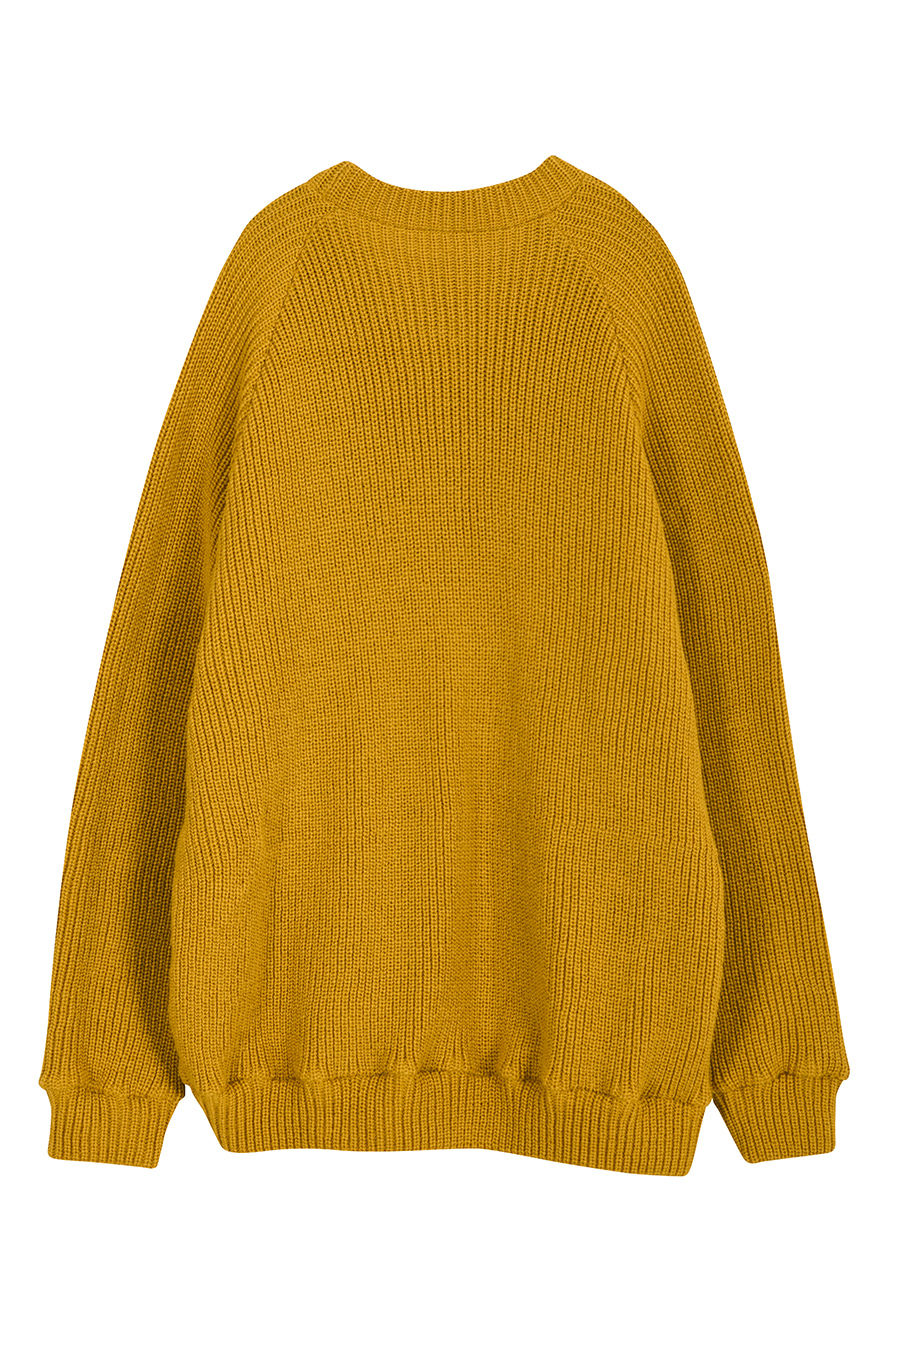 """The Nomad"" Artwork Fabric Detail Sweater - Mustard"